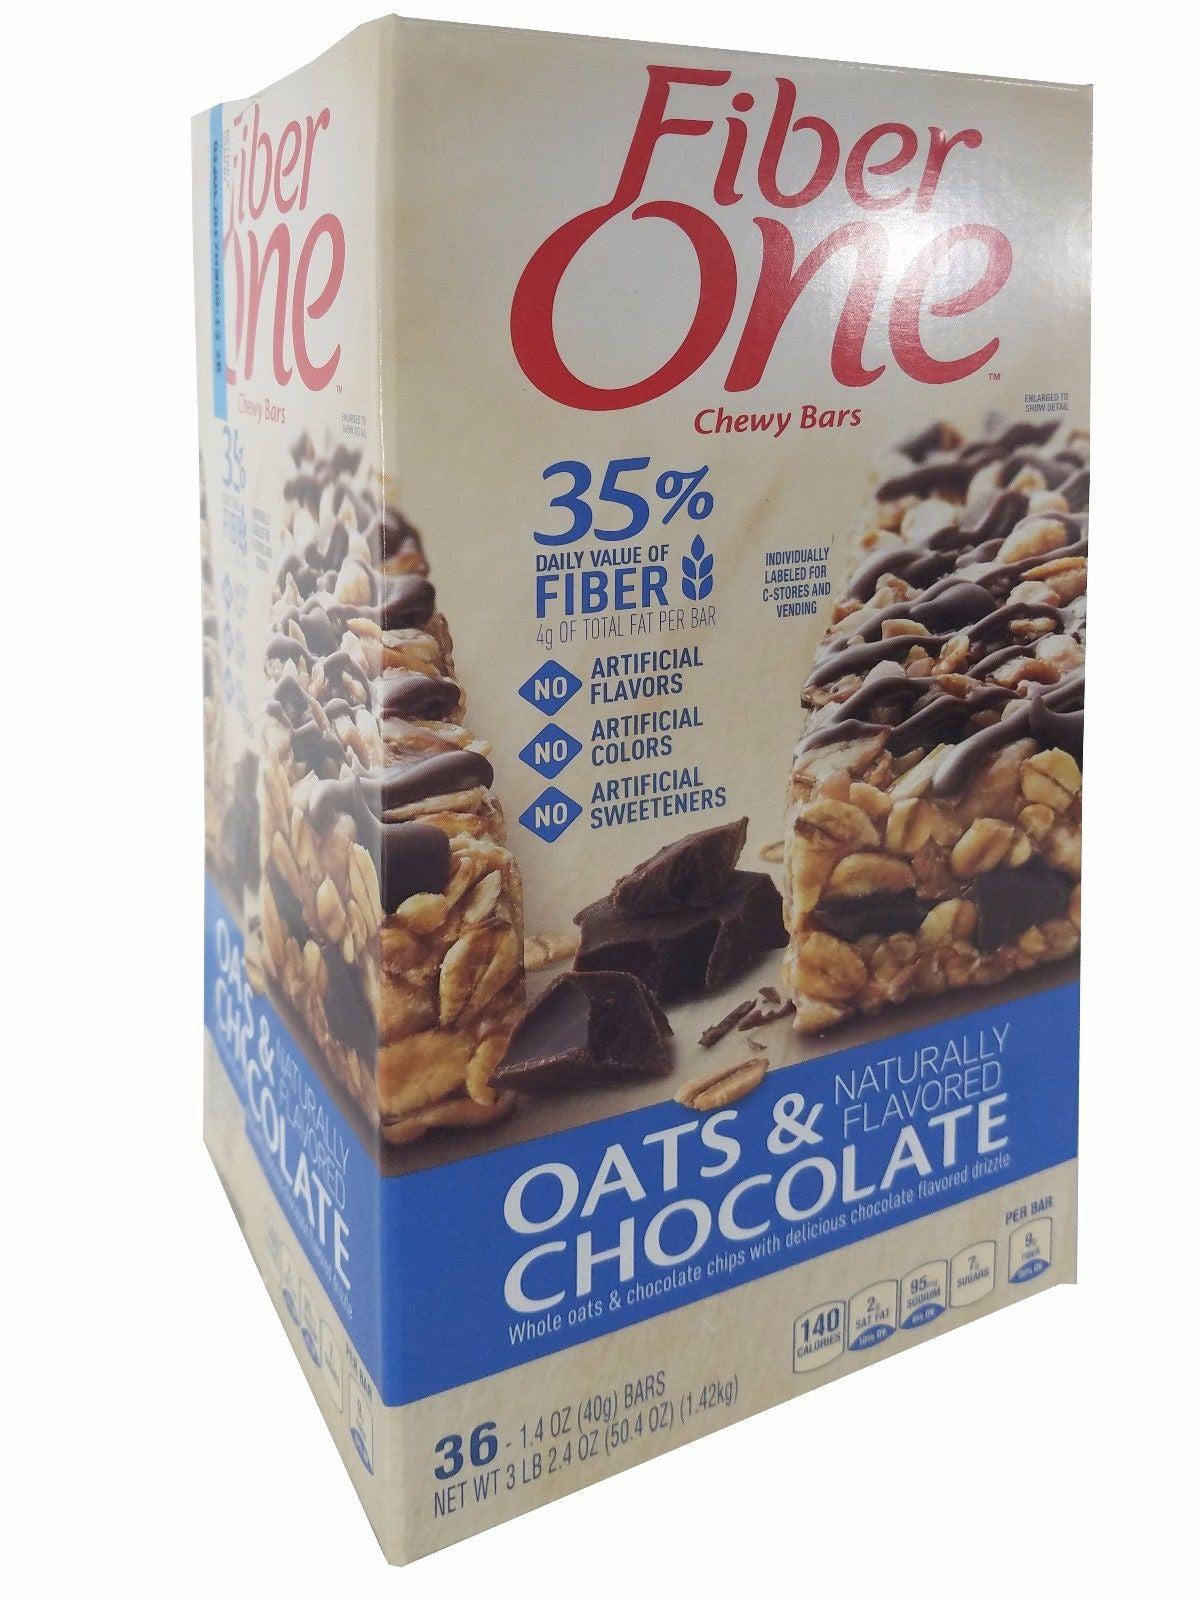 Fiber One Oats & Chocolate Chewy Bars 3LB 2.4OZ Naturally Flavored 36 Bars